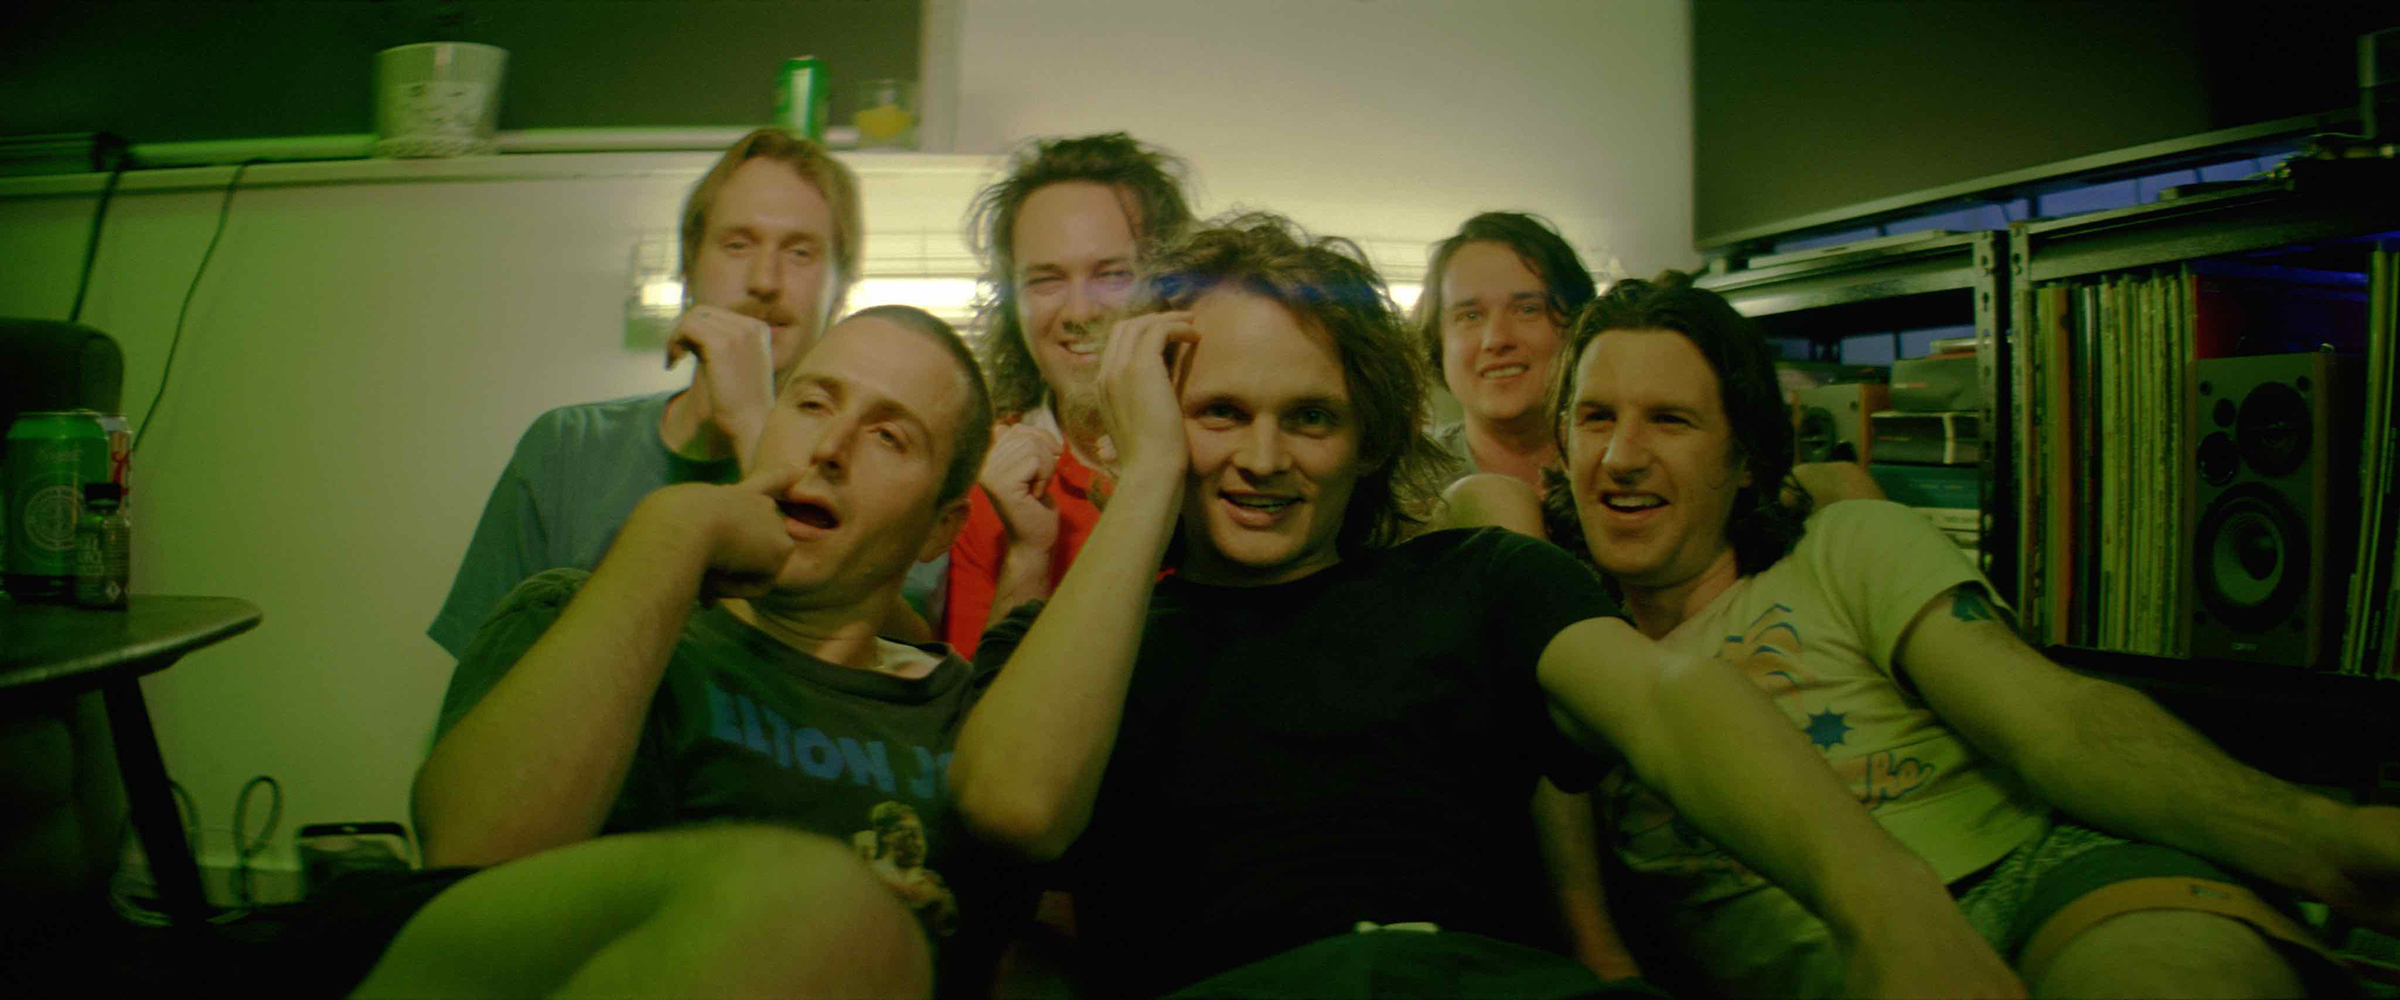 King Gizzard & The Lizard Wizard - share new video & announce details of live concert film